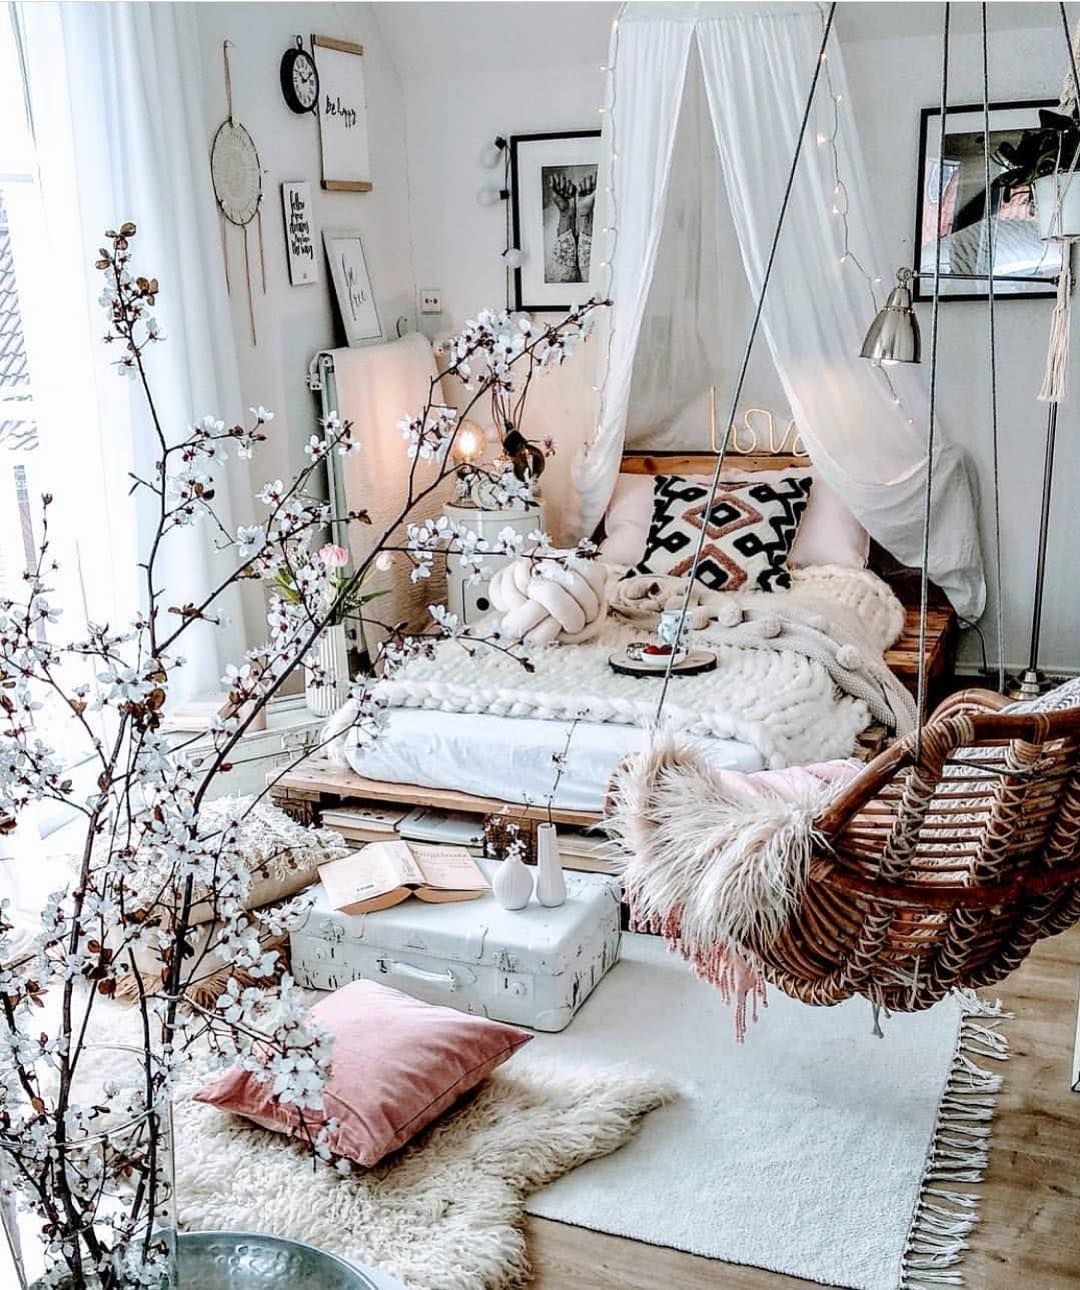 Stylish Bohemian Style Bedroom Decor Design Ideas To Try Asap26